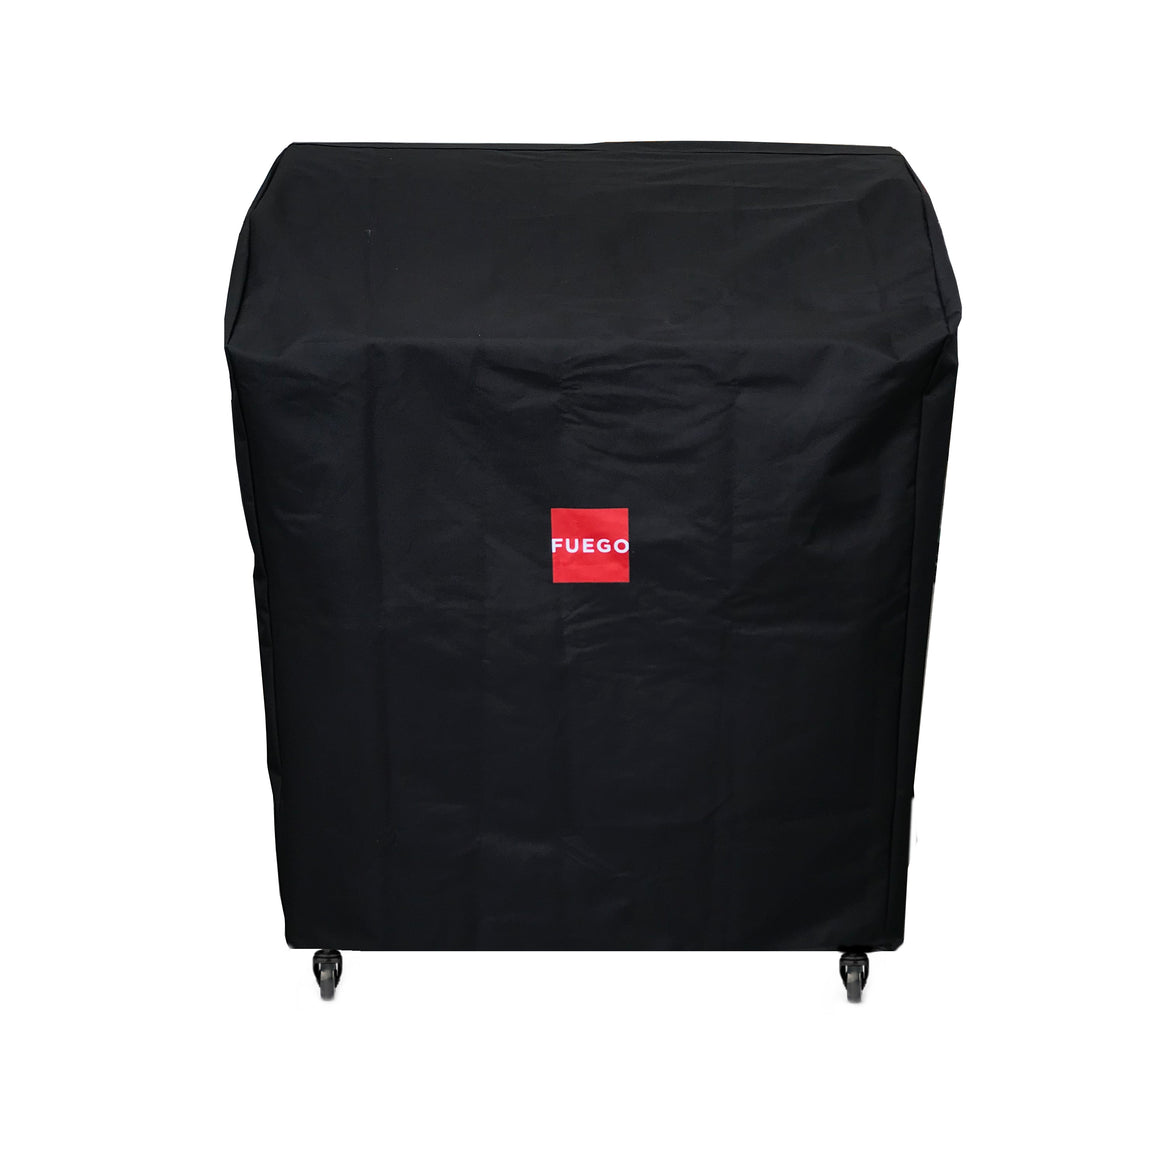 f36s outdoor cover black | cover for outdoor grill | grill covers for sale | black cover for gas grill | gas grill black covers